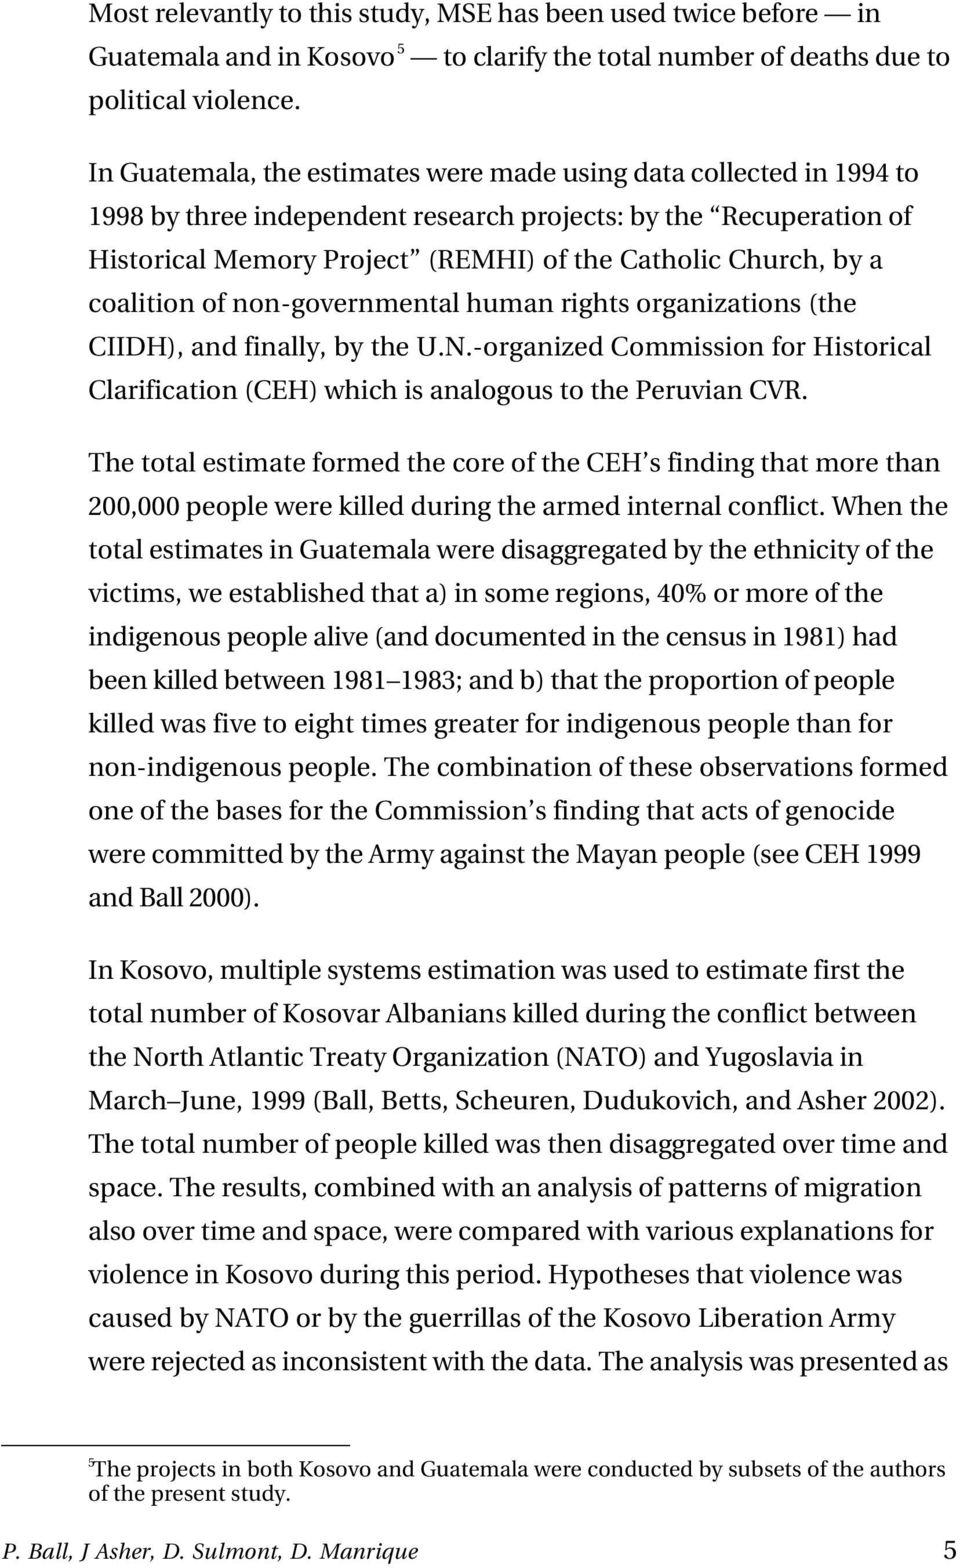 a coalition of non-governmental human rights organizations (the CIIDH), and finally, by the U.N.-organized Commission for Historical Clarification (CEH) which is analogous to the Peruvian CVR.